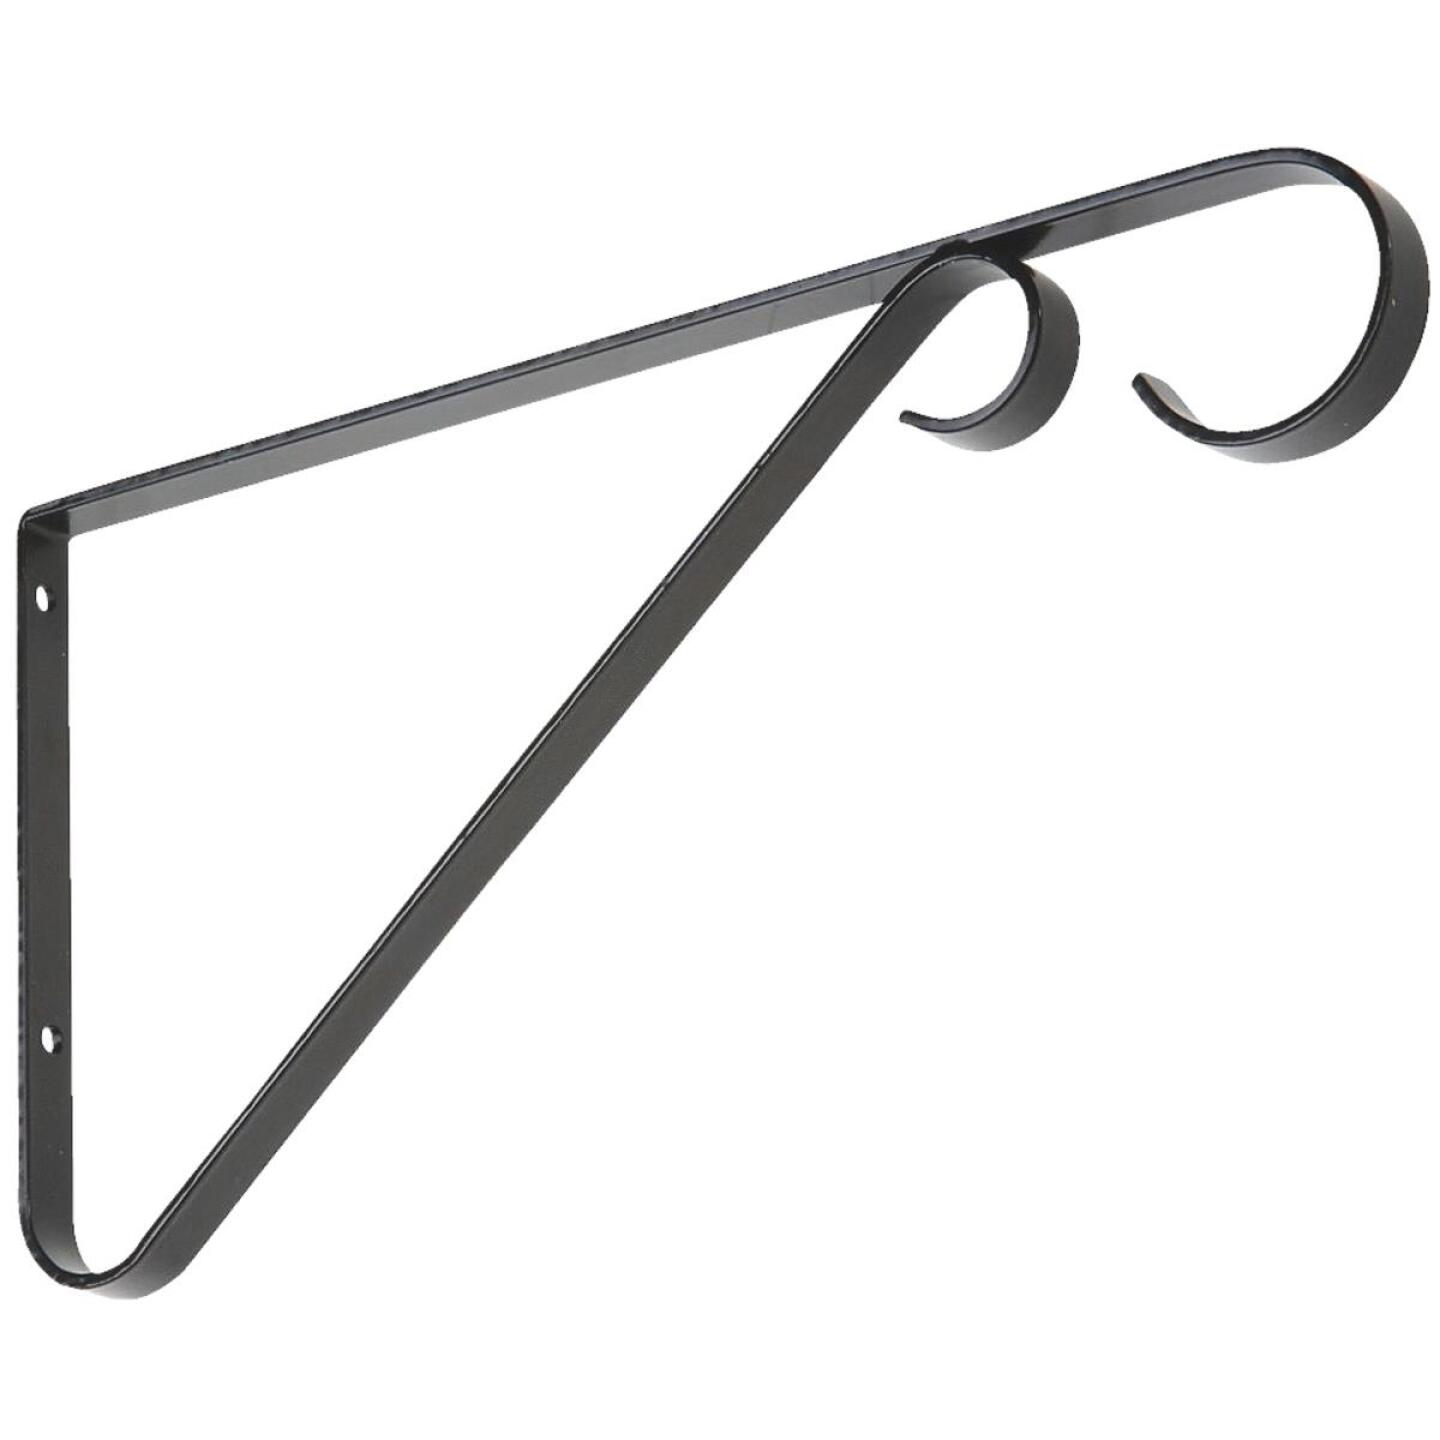 National 9 In. Black Steel Hanging Plant Bracket Image 1